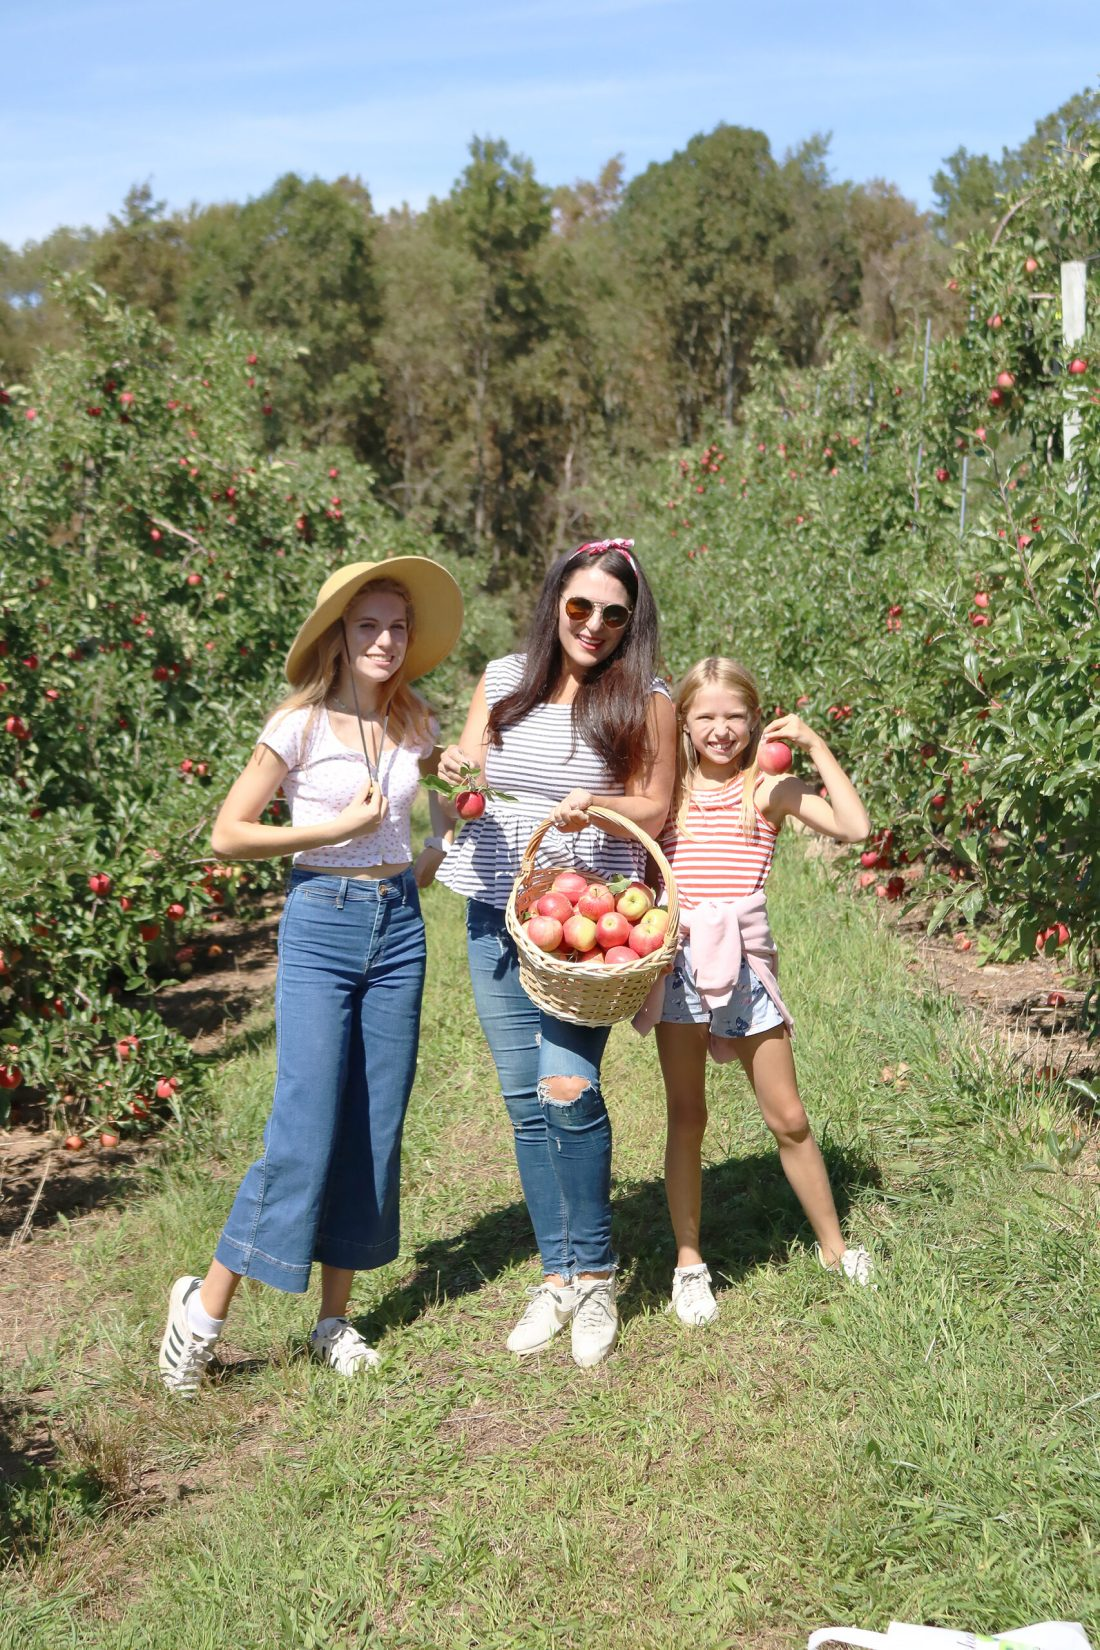 Apple Picking Season--What to wear and what apples to pick whether you are baking, cooking, canning or just eating. || DarlingDarleen.com Top CT Lifestyle Blogger